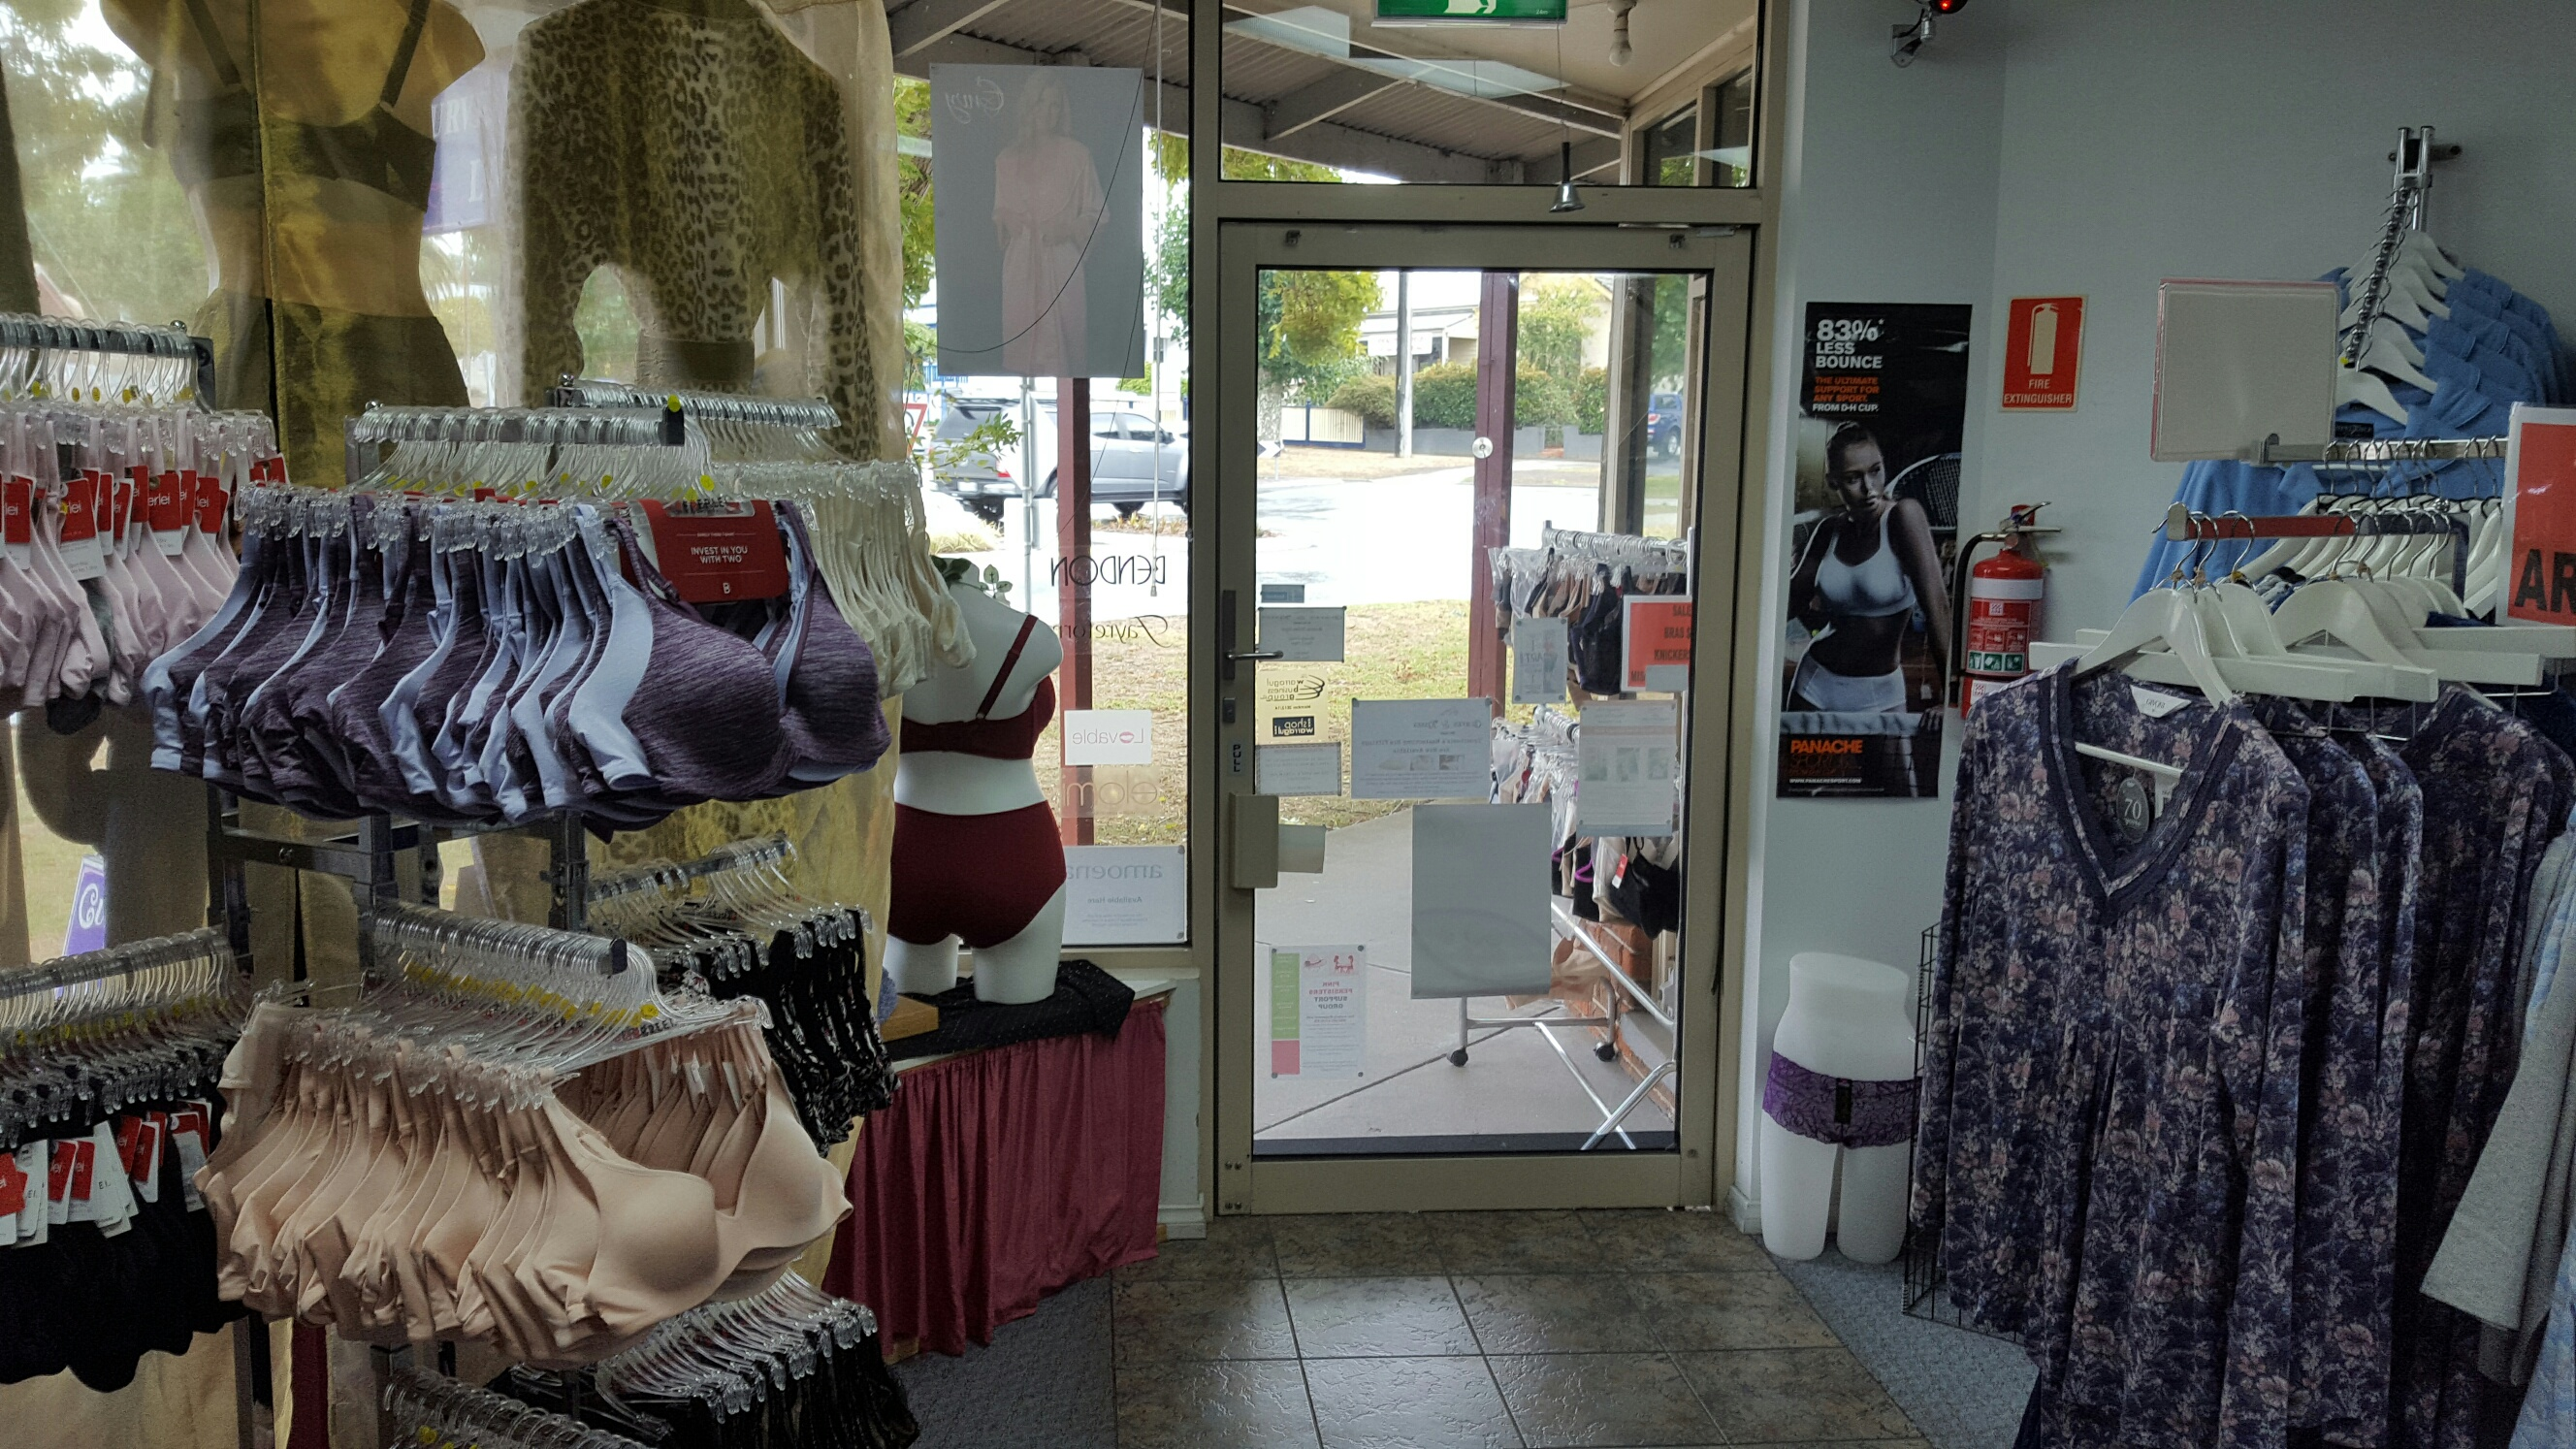 lingerie-business-for-sale-6